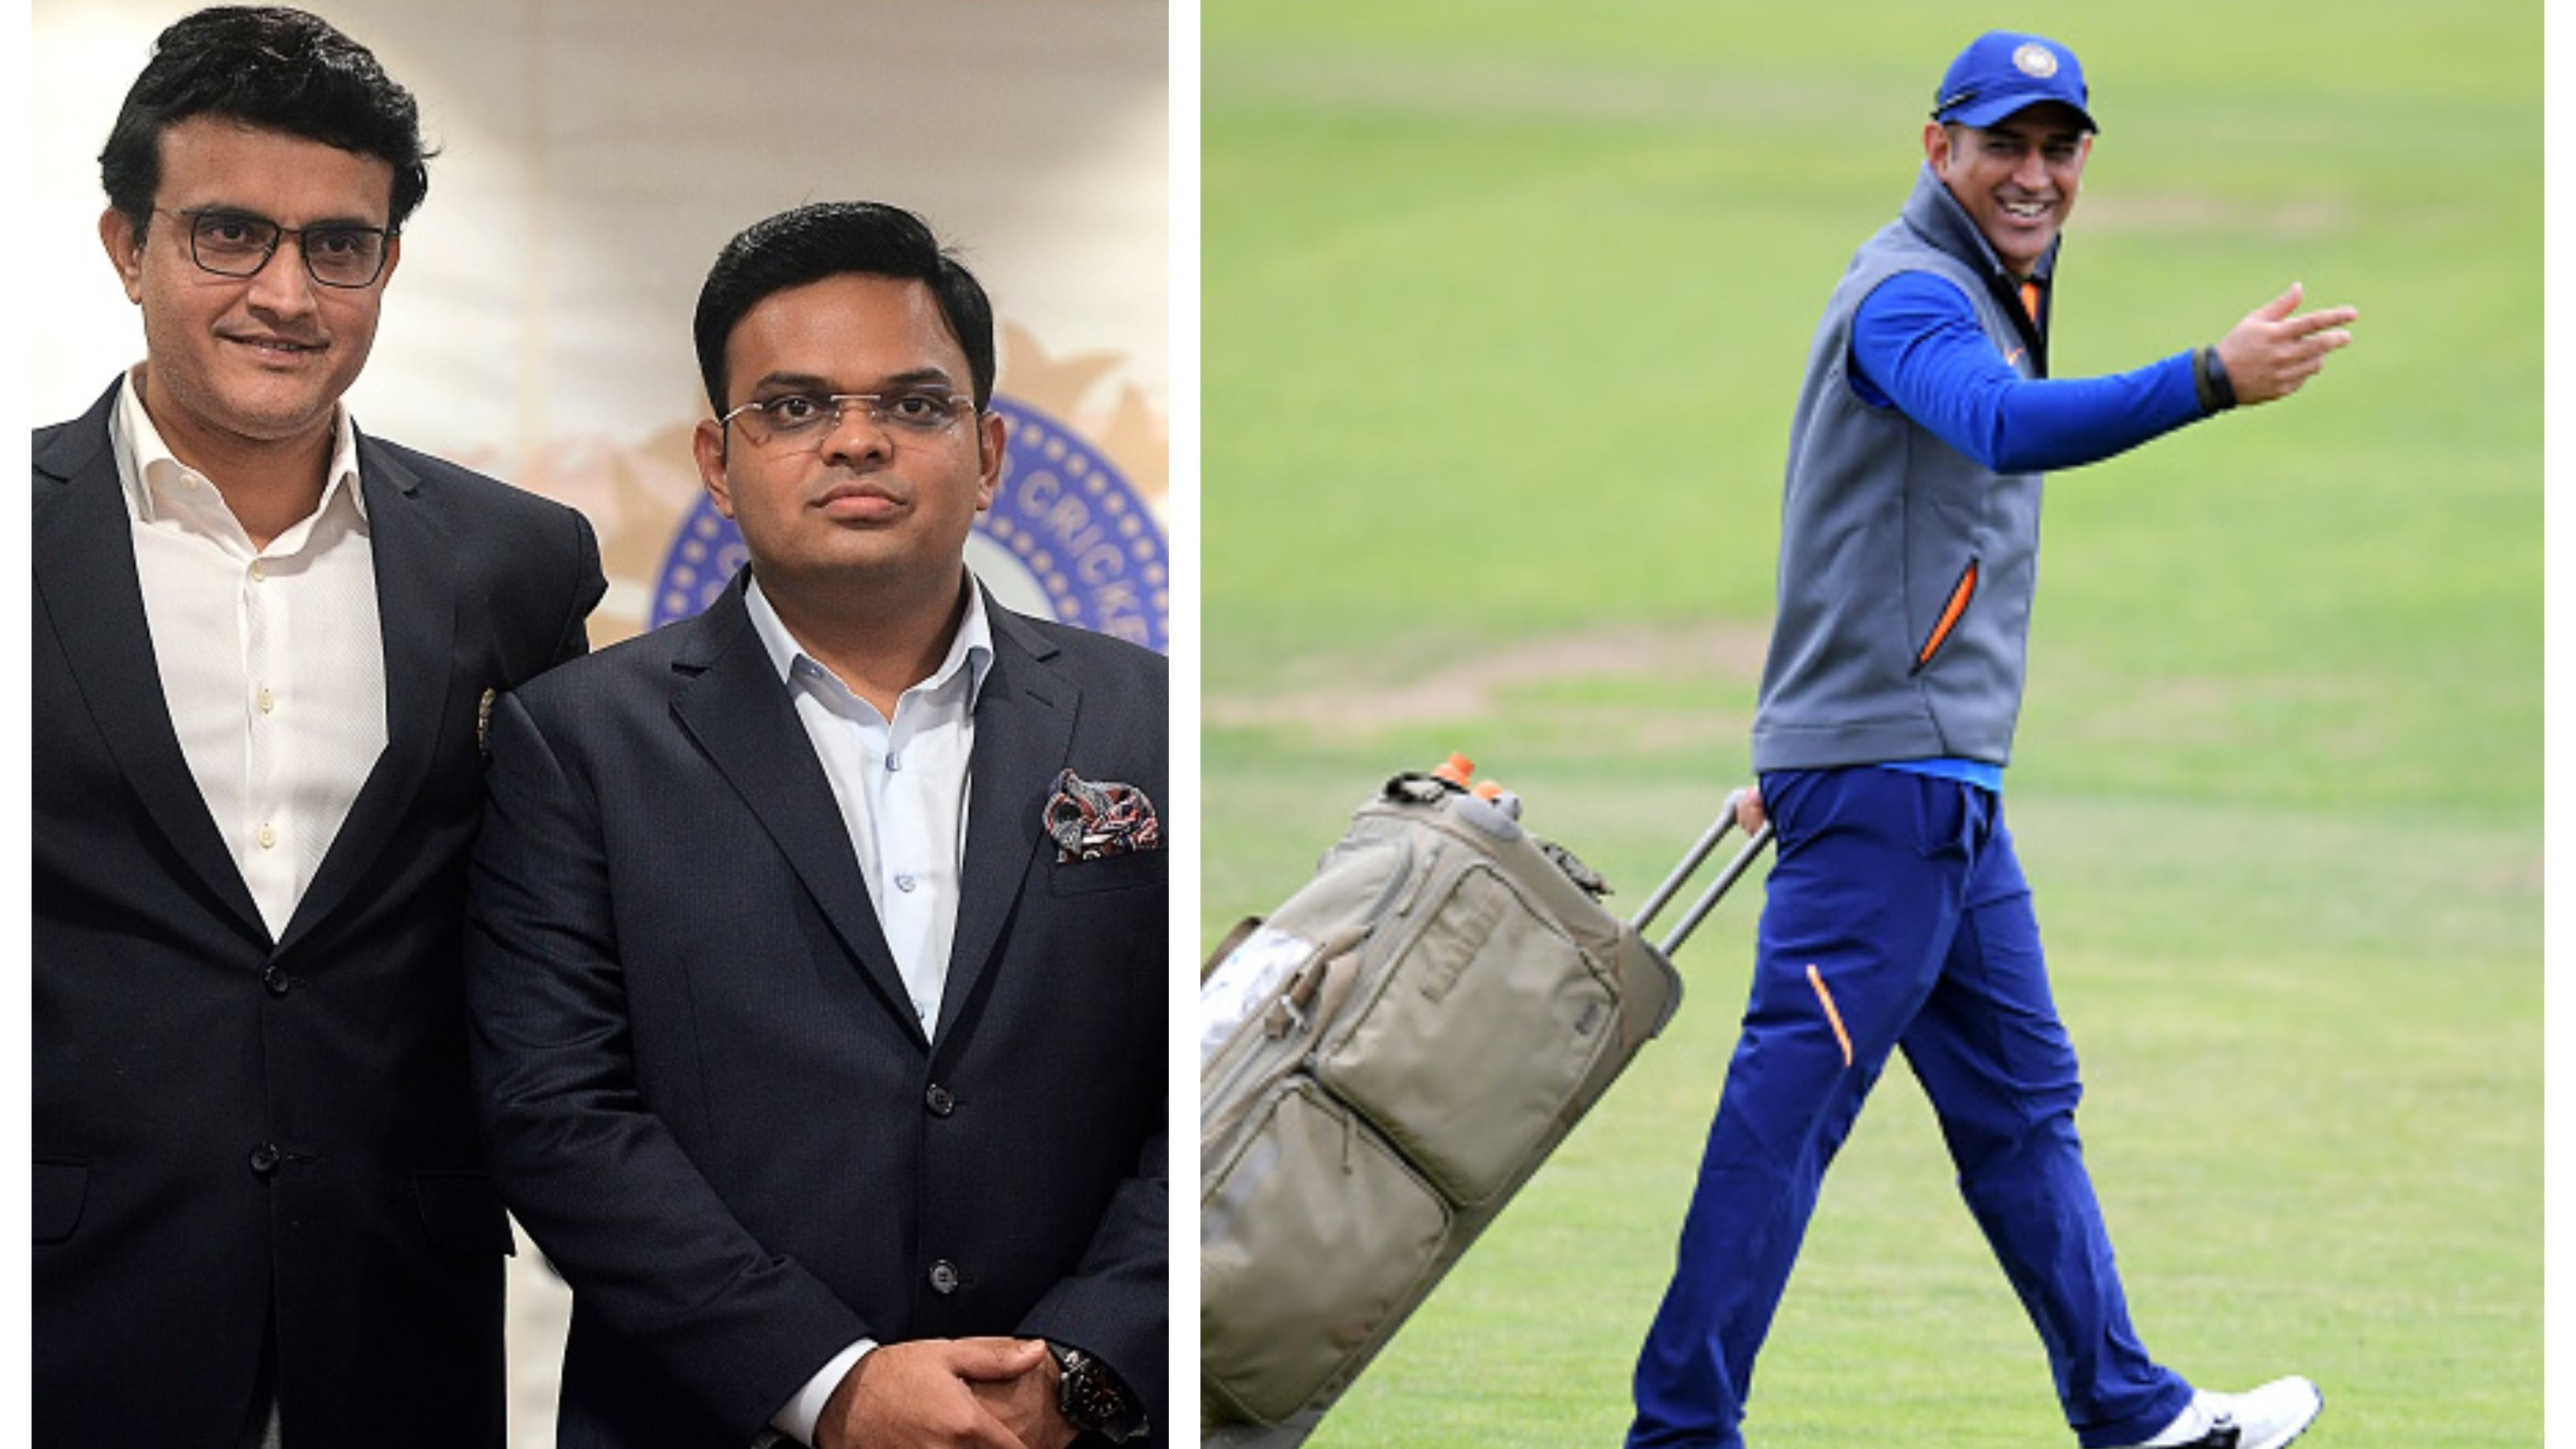 T20 World Cup 2021: Jay Shah, Sourav Ganguly reveal MS Dhoni won't charge for his role as Team India's mentor